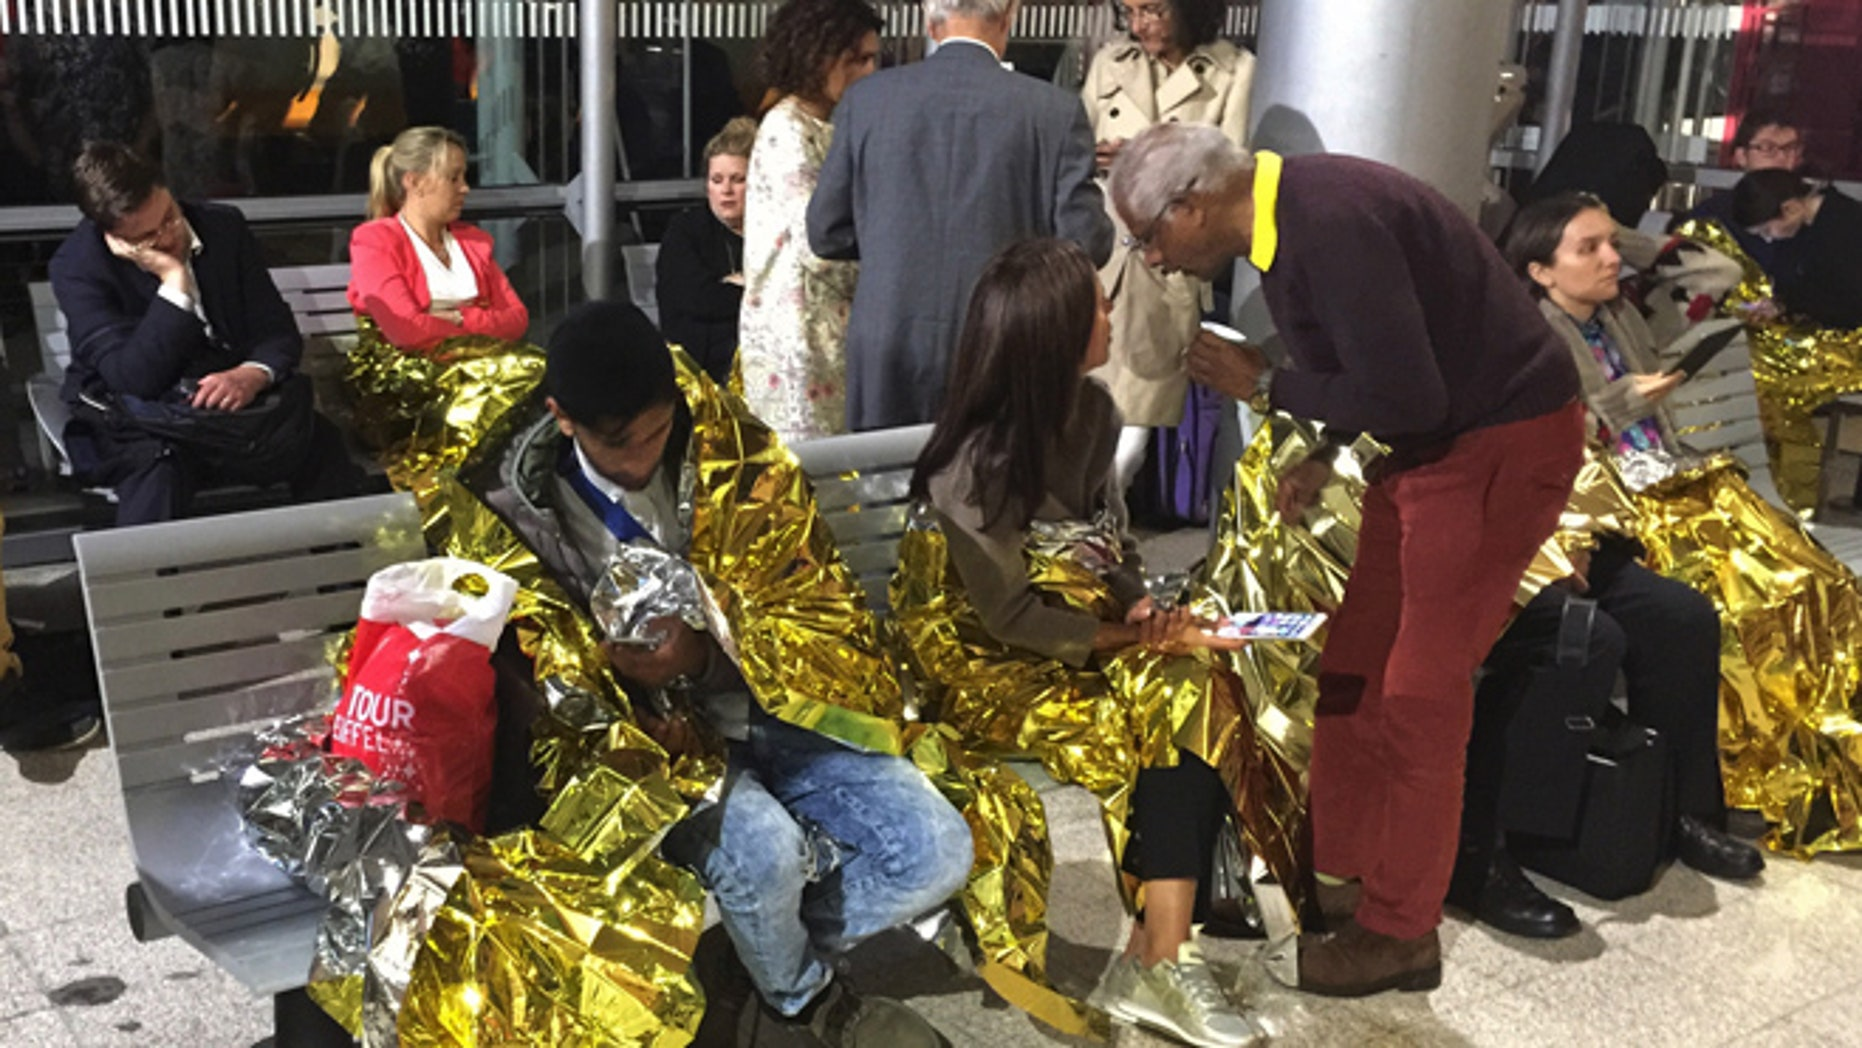 Sept. 2: Passengers wrapped in thermal foil blankets given out by emergency services after their Eurostar train was stranded at Calais Station, after intruders were seen near the Eurotunnel, in Calais, France.